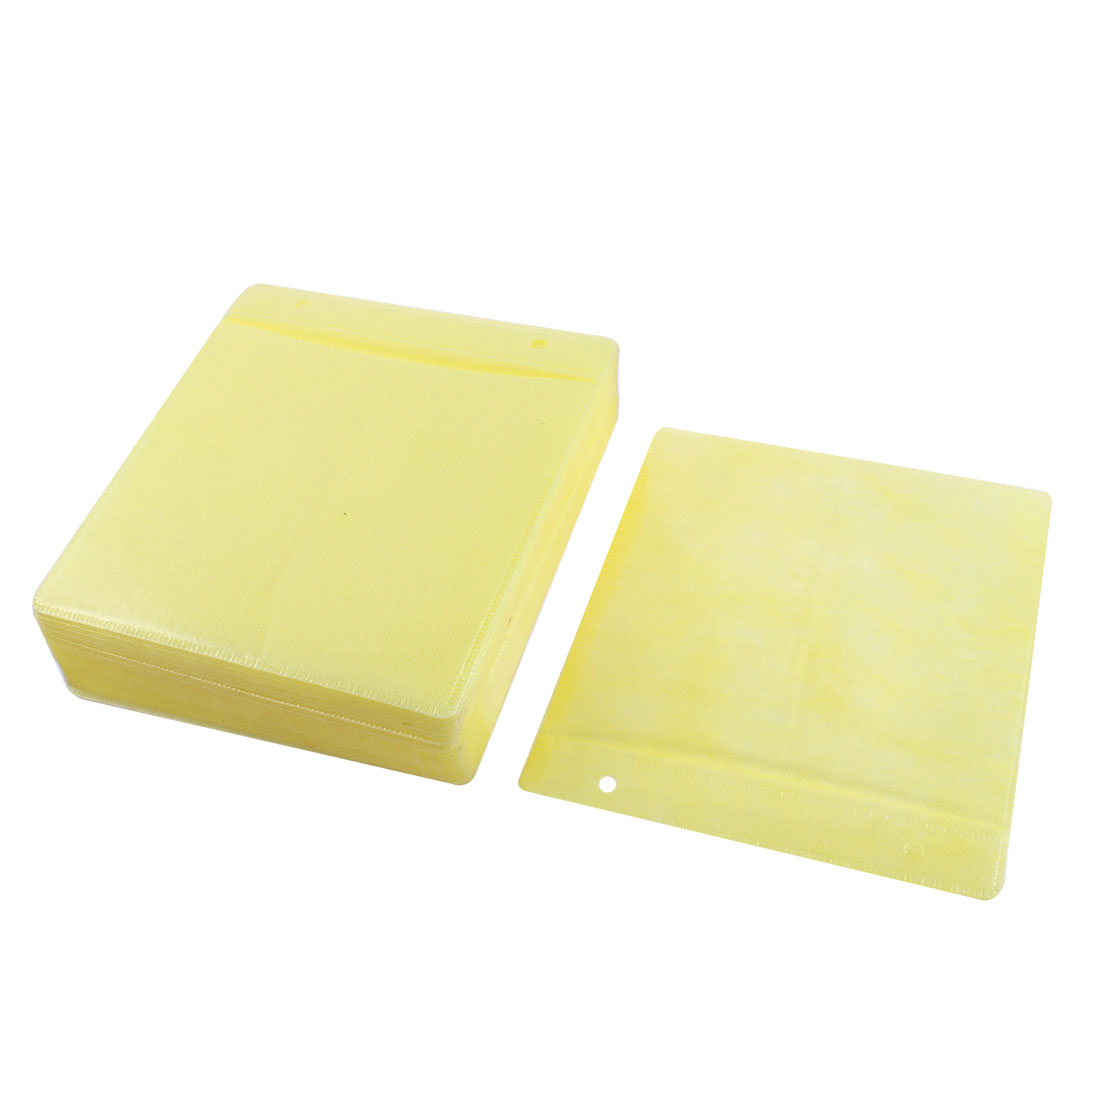 Disc CD DVD Double Sided Storage Sleeve Bags Yellow 100 PCS